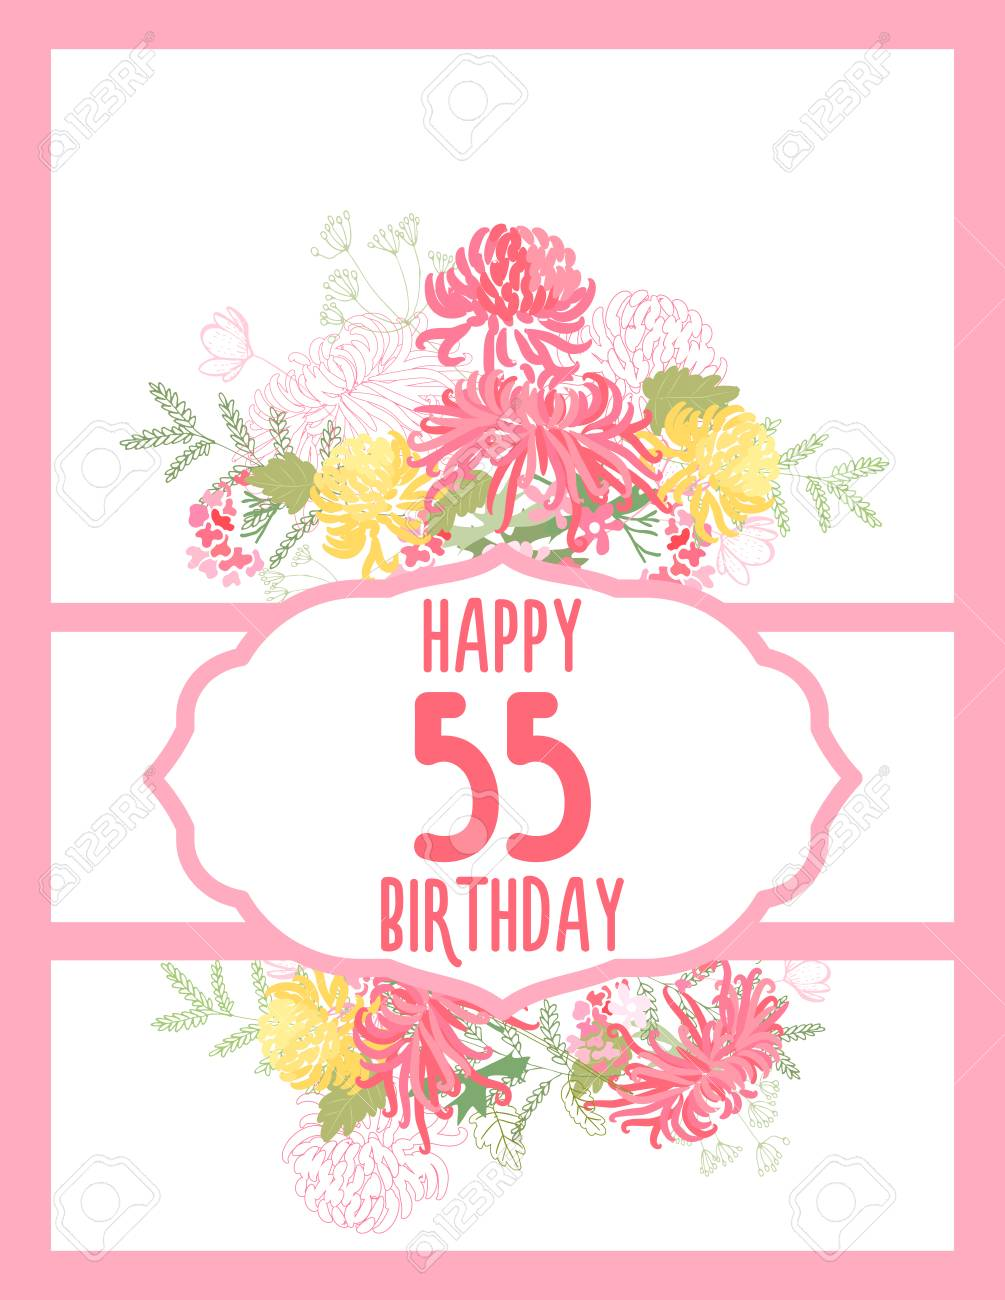 Greeting card for anniversary birthday on a plain background greeting card for anniversary birthday on a plain background stock vector 87777660 m4hsunfo